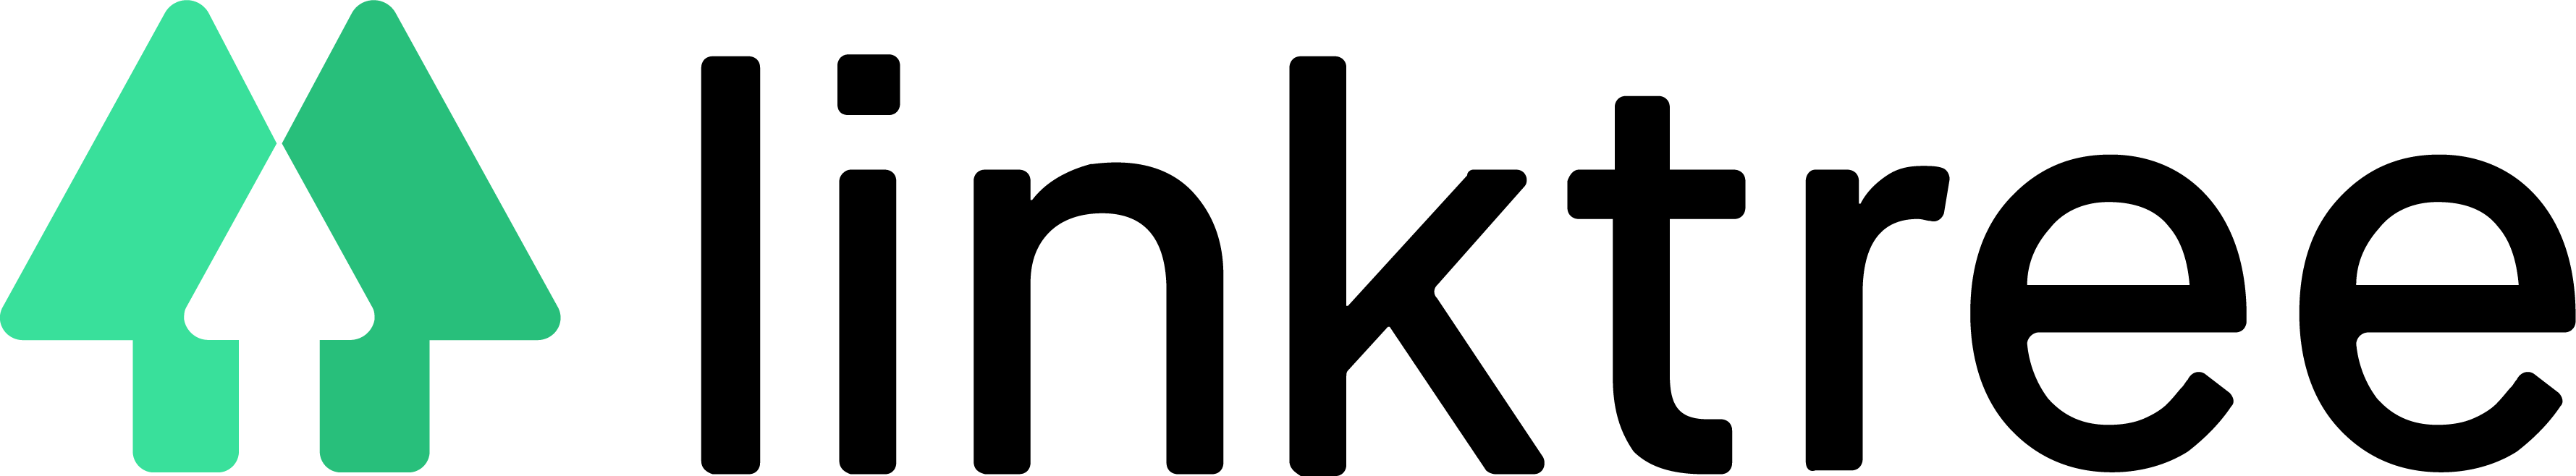 logo-linktree-3559x658px.png